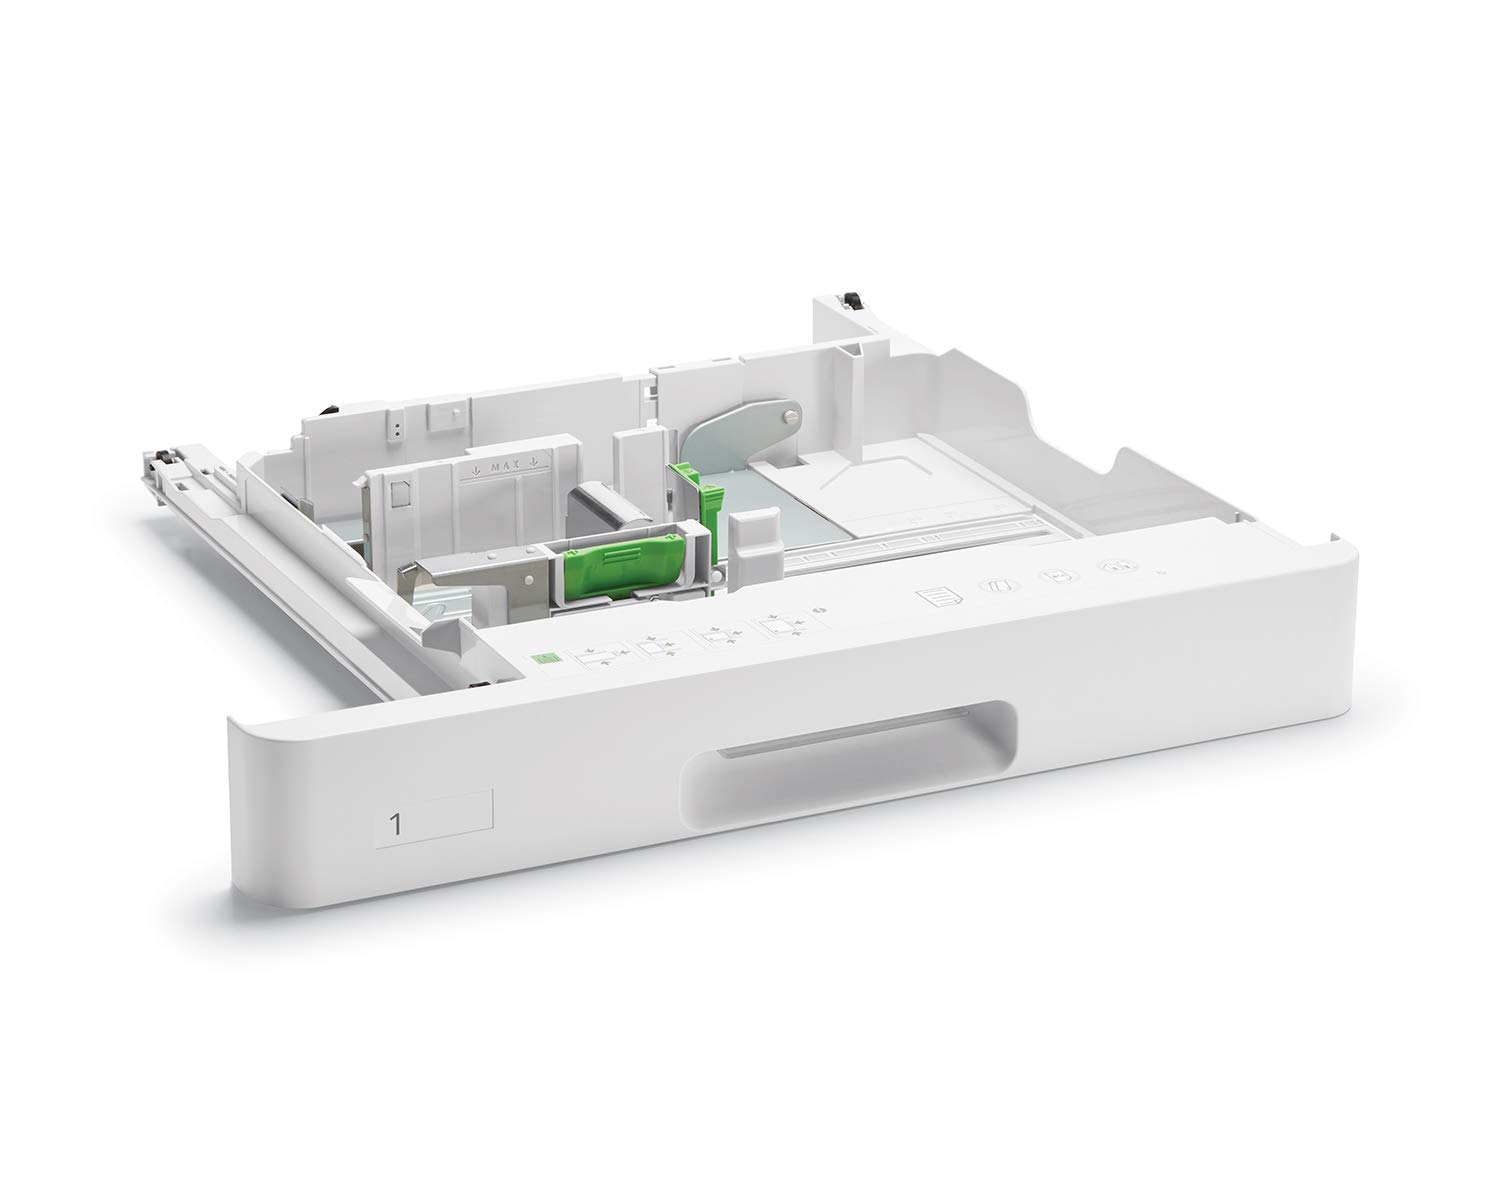 Envelope Tray, Xerox part number 497K17880, for use in VersaLink C8000 and C9000